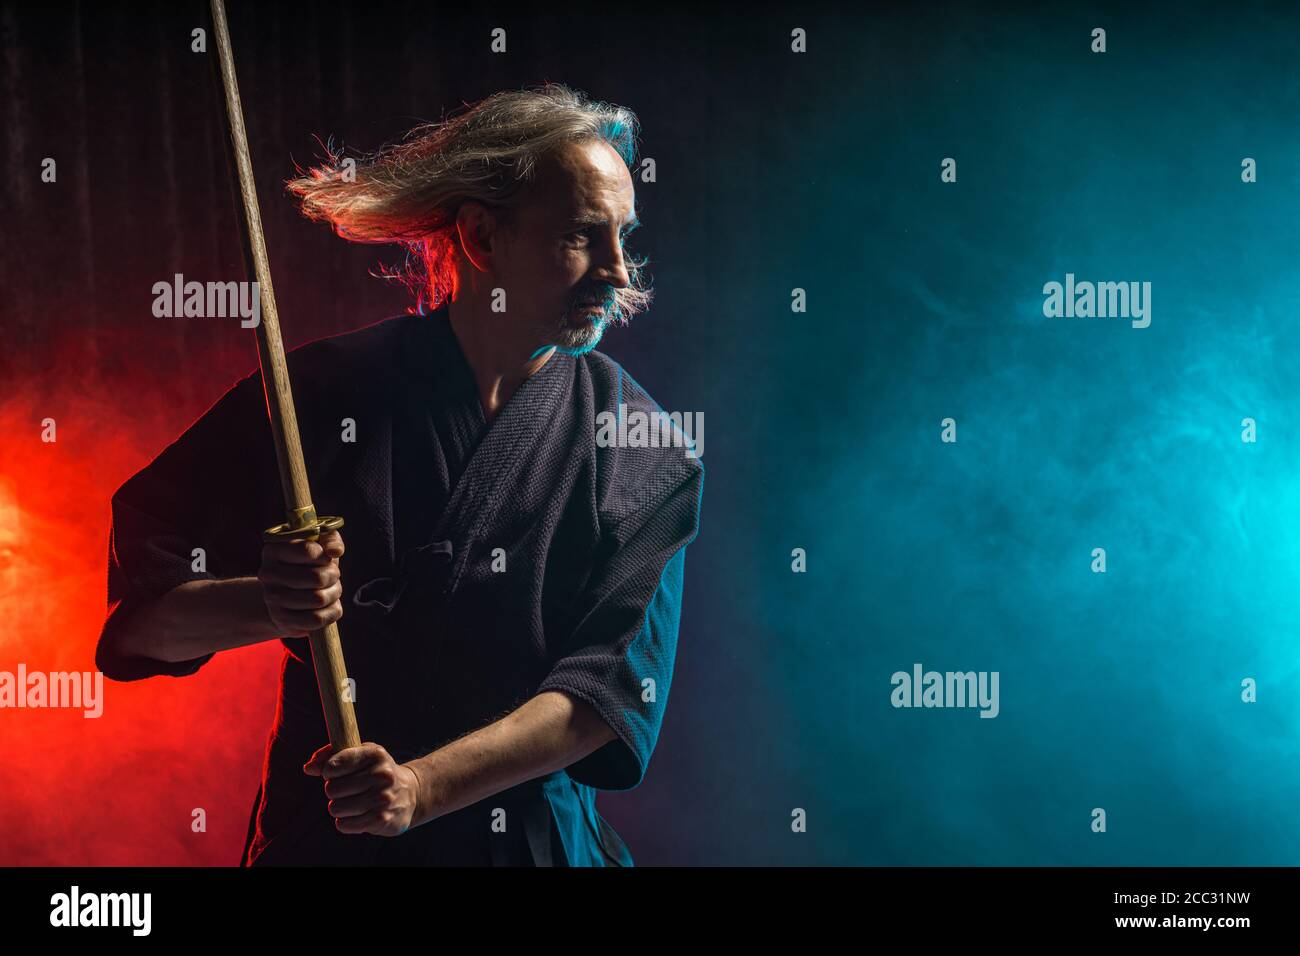 Confident Caucasian Kendo Warrior In Traditional Outfit Use Bamboo Sword Shinai For Fighting Katana Samurai Concept Stock Photo Alamy